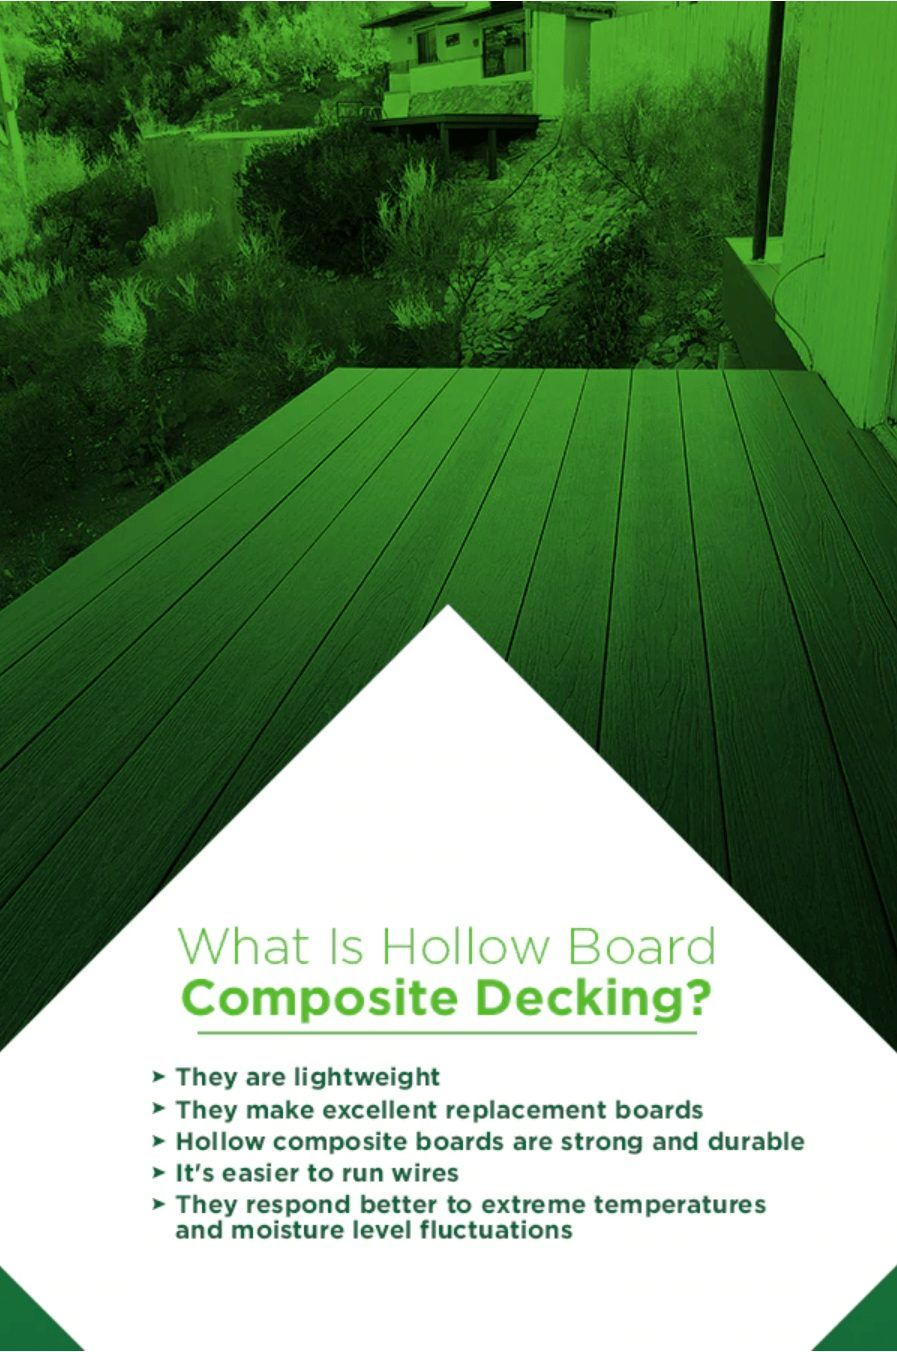 What-Is-Hollow-Board-Composite-Decking